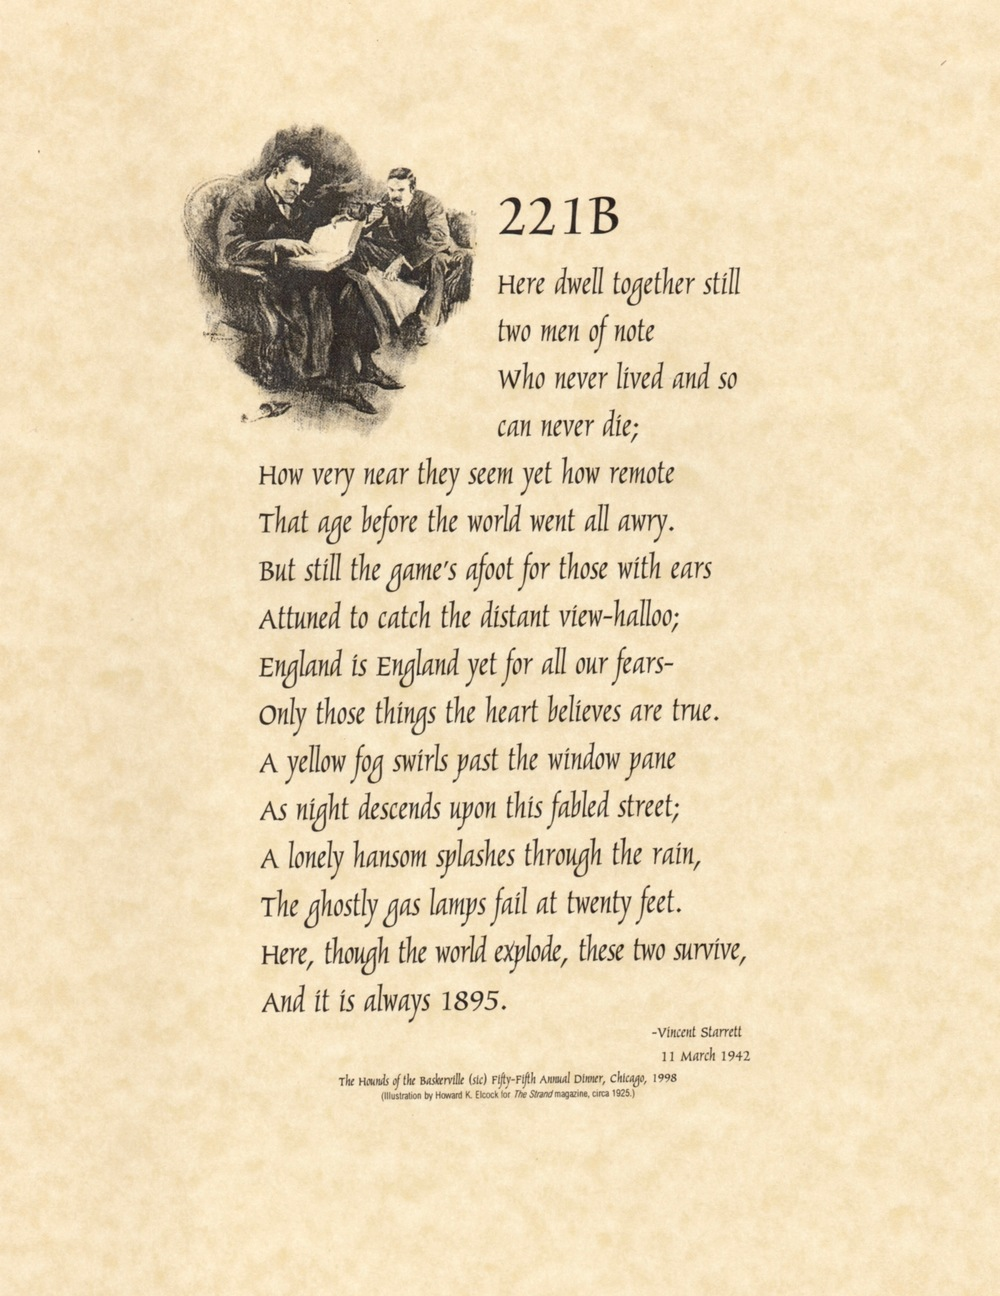 "A reprint of the famous sonnet ""221B"" done for The Hounds of the Baskerville."